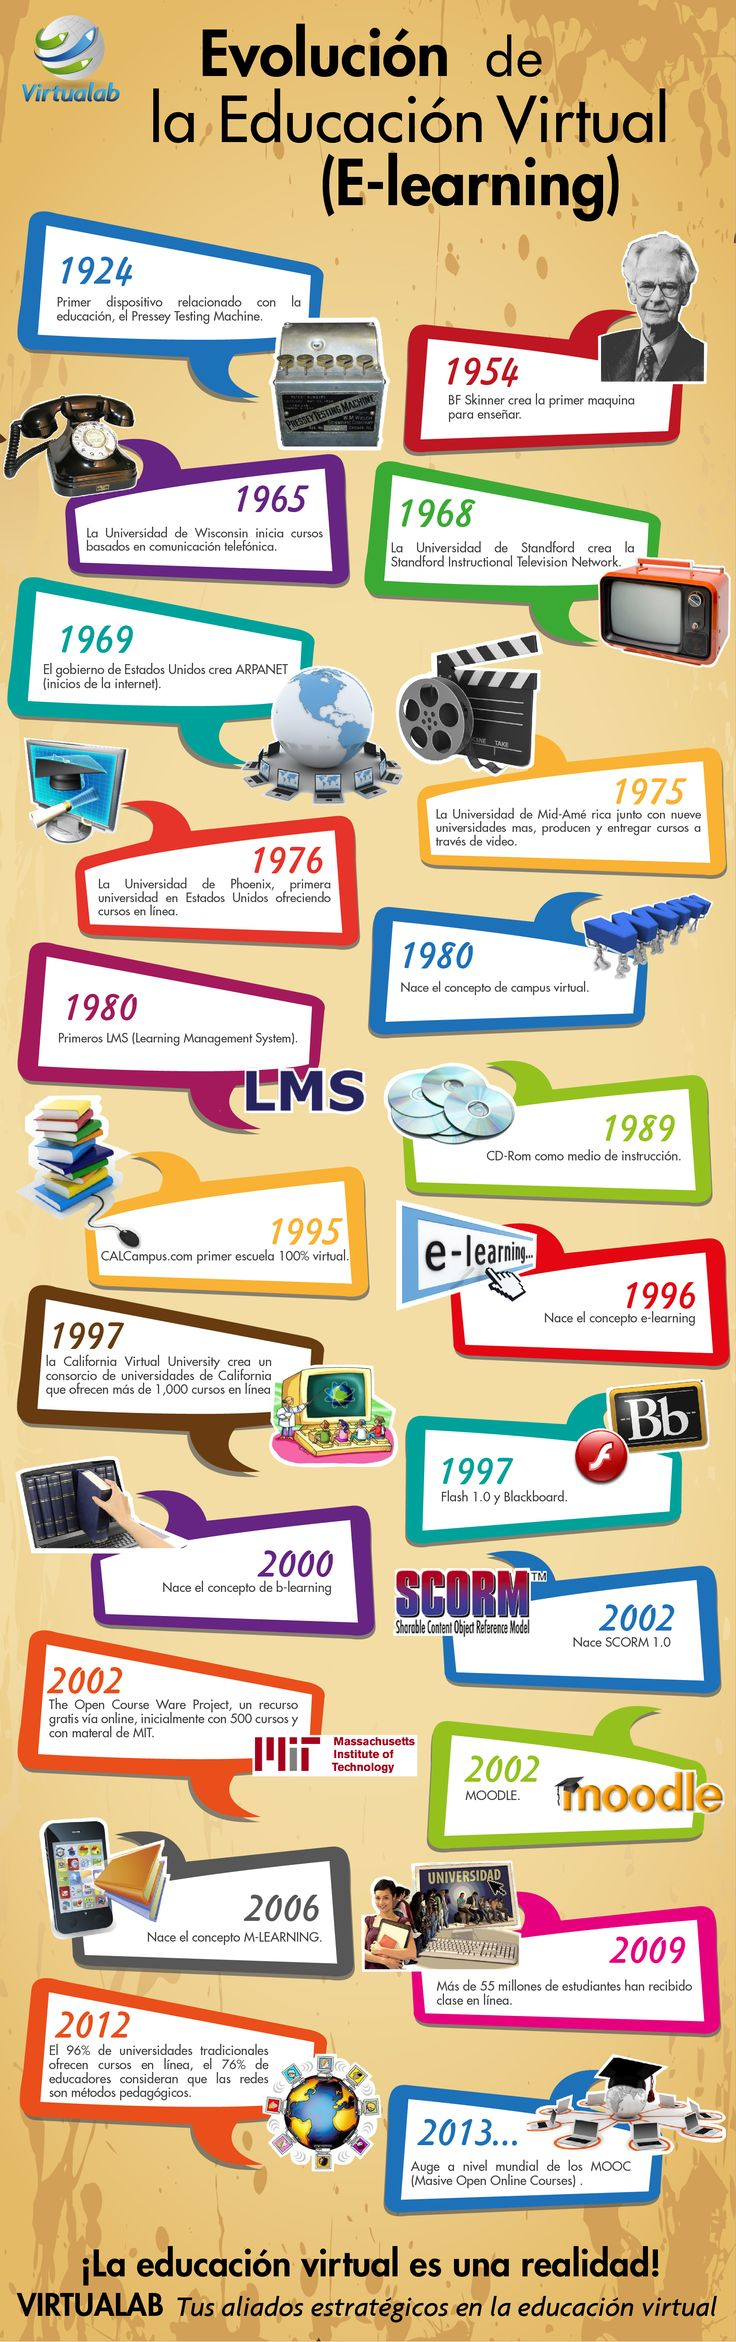 La historia de la Educación Virtual #eLearning